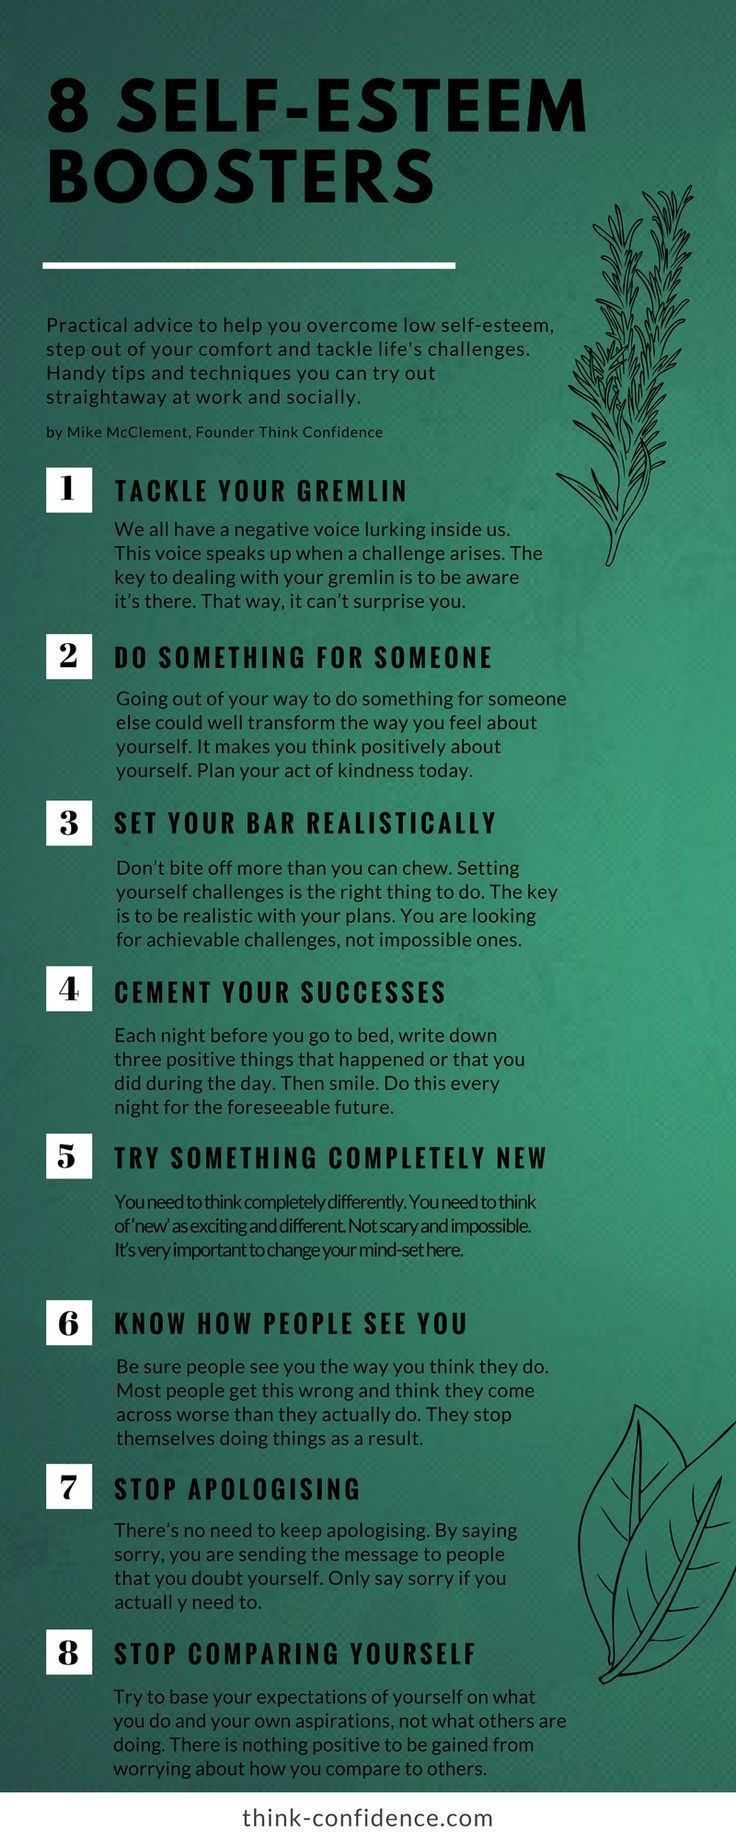 Practical tips for building self-esteem and overcoming self-doubt #infographic #selfesteem #selfdoubt #selfconfidence http://www.loaspower.com/which-type-of-thinker-are-you/